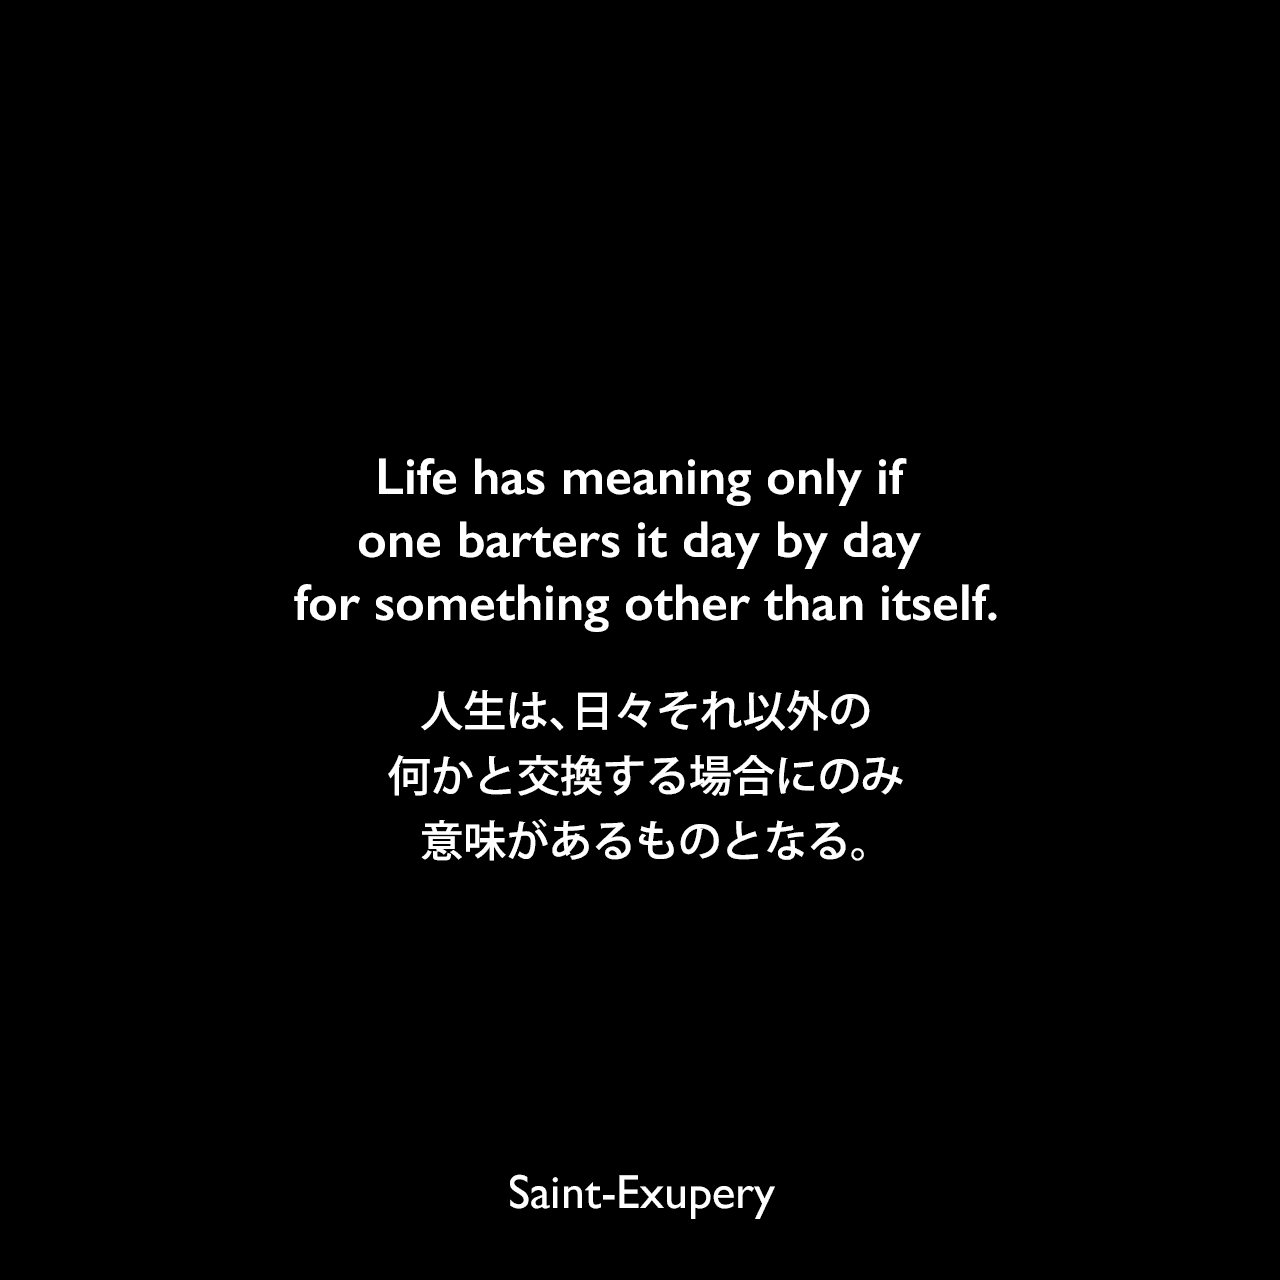 Life has meaning only if one barters it day by day for something other than itself.人生は、日々それ以外の何かと交換する場合にのみ意味があるものとなる。Saint-Exupery